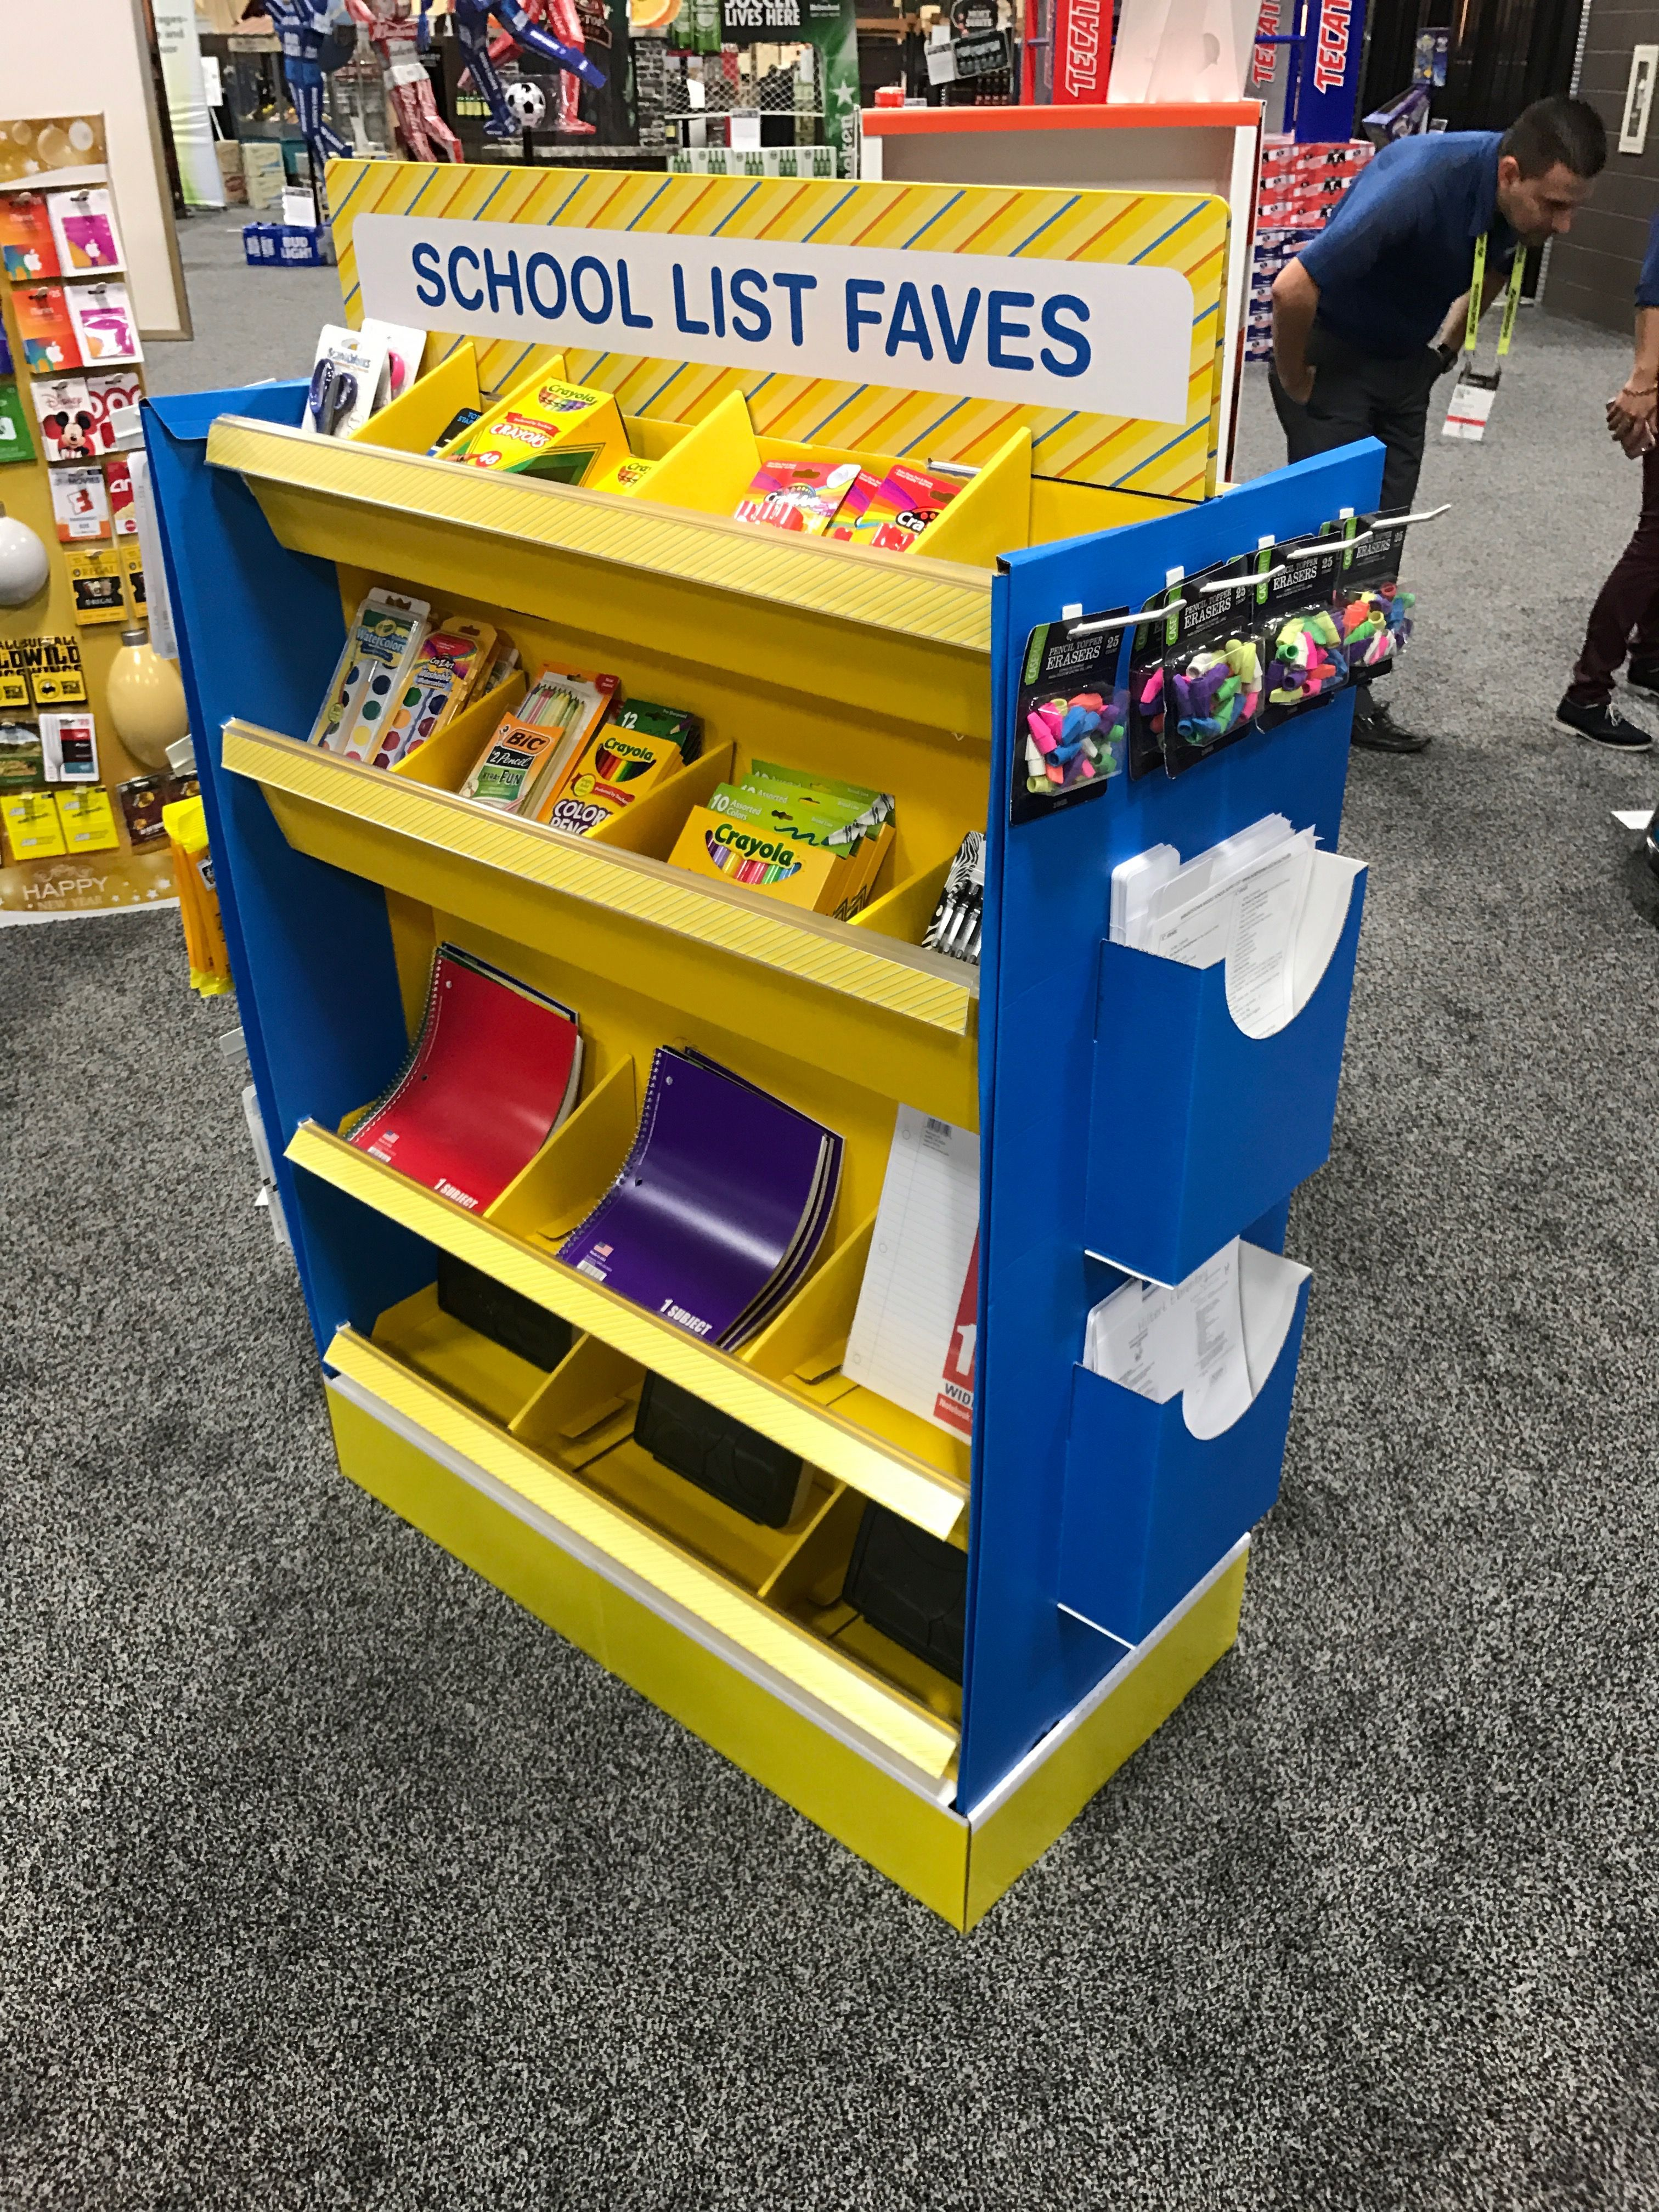 Looking To Purchase This Unit: Crayola 'School List Faves' Free Standing Unit